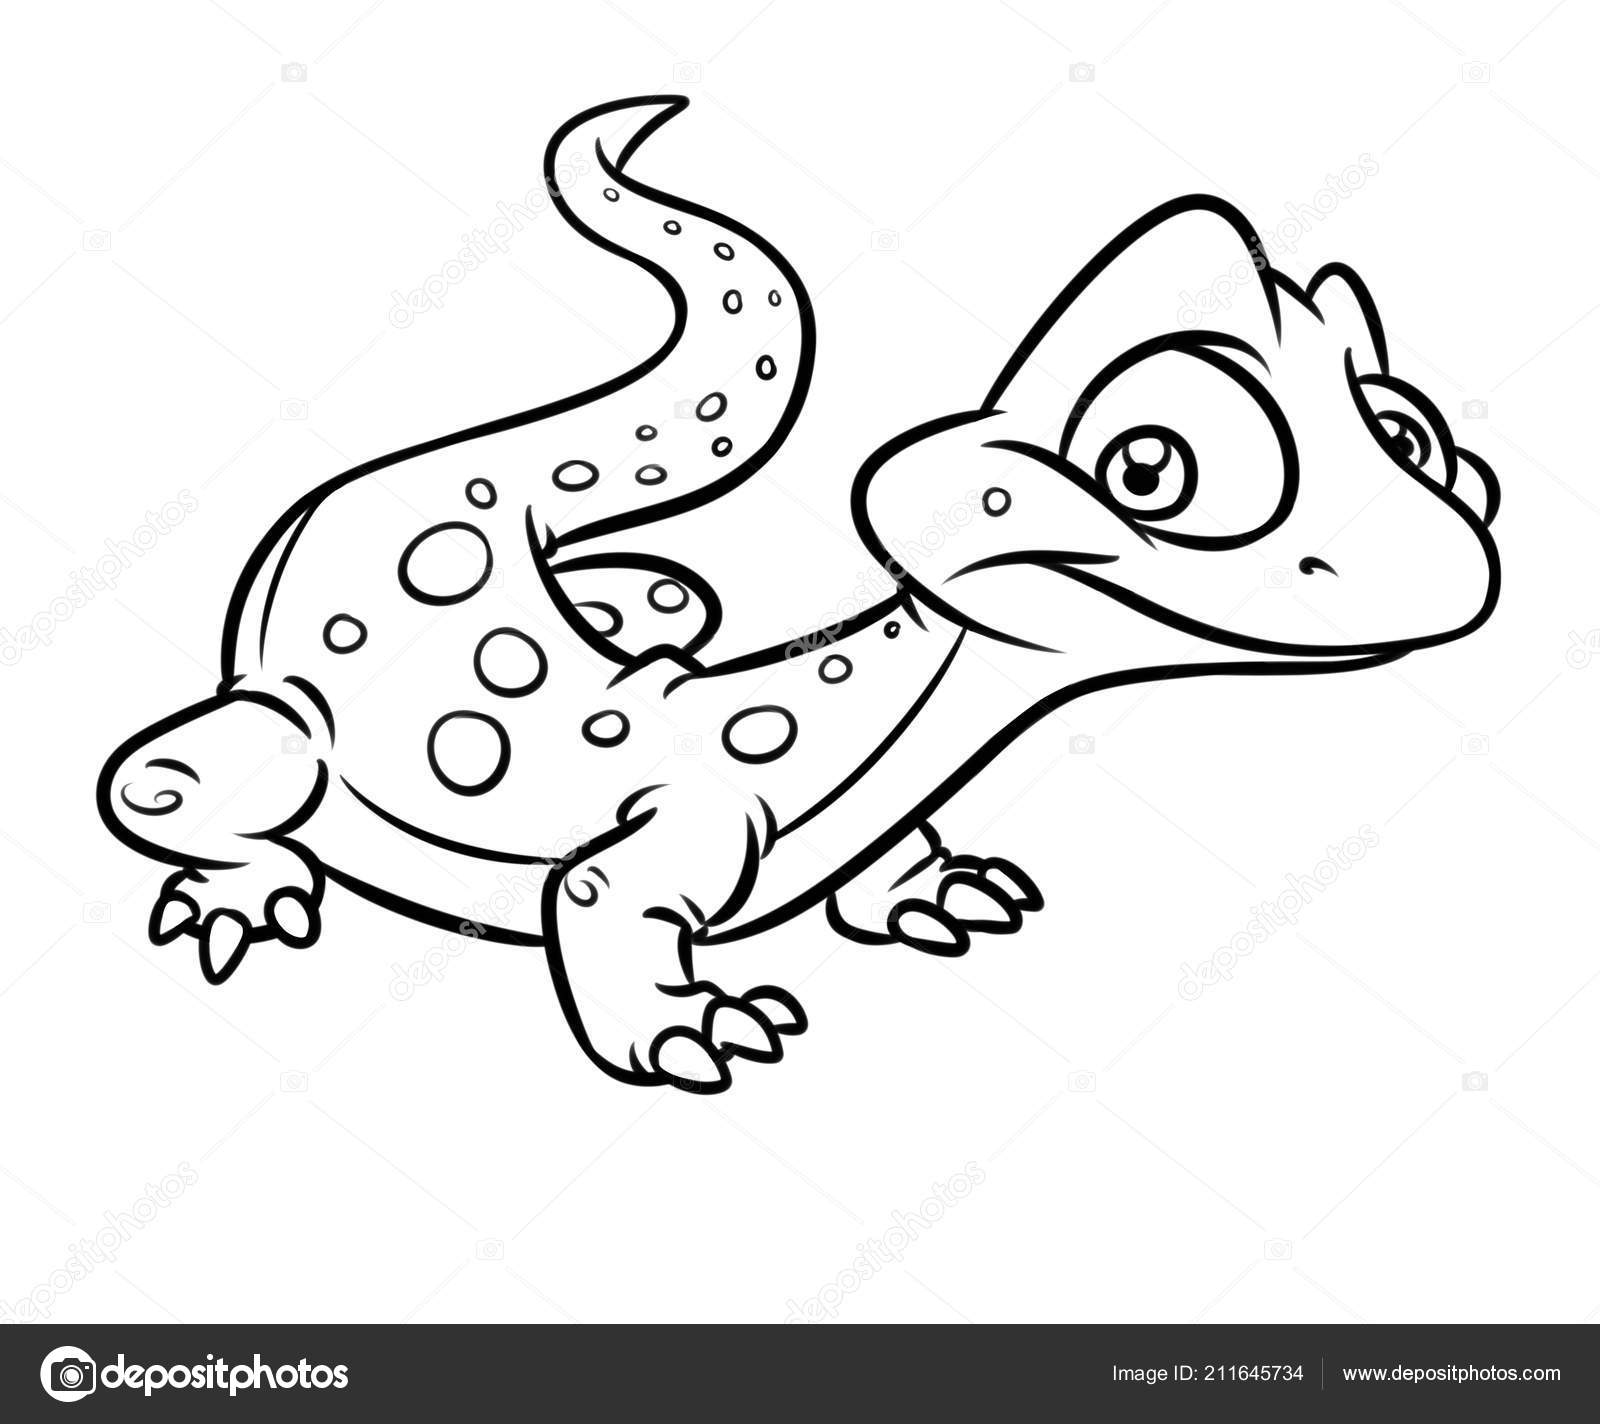 Gecko Animals Coloring Pages coloring page & book for kids. | 1424x1600